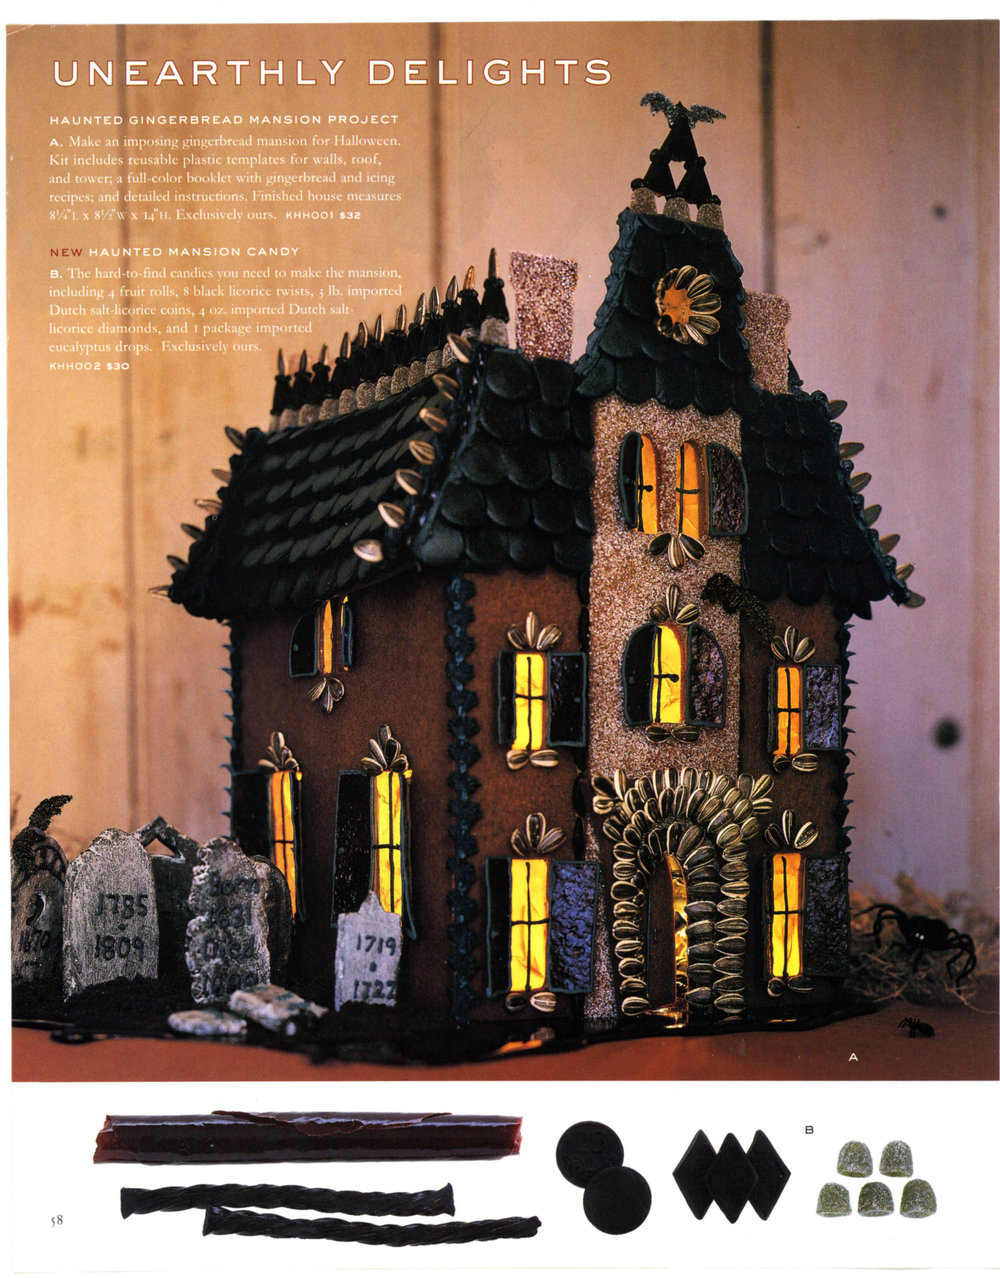 spooky gingerbread house kit for Martha Stewart